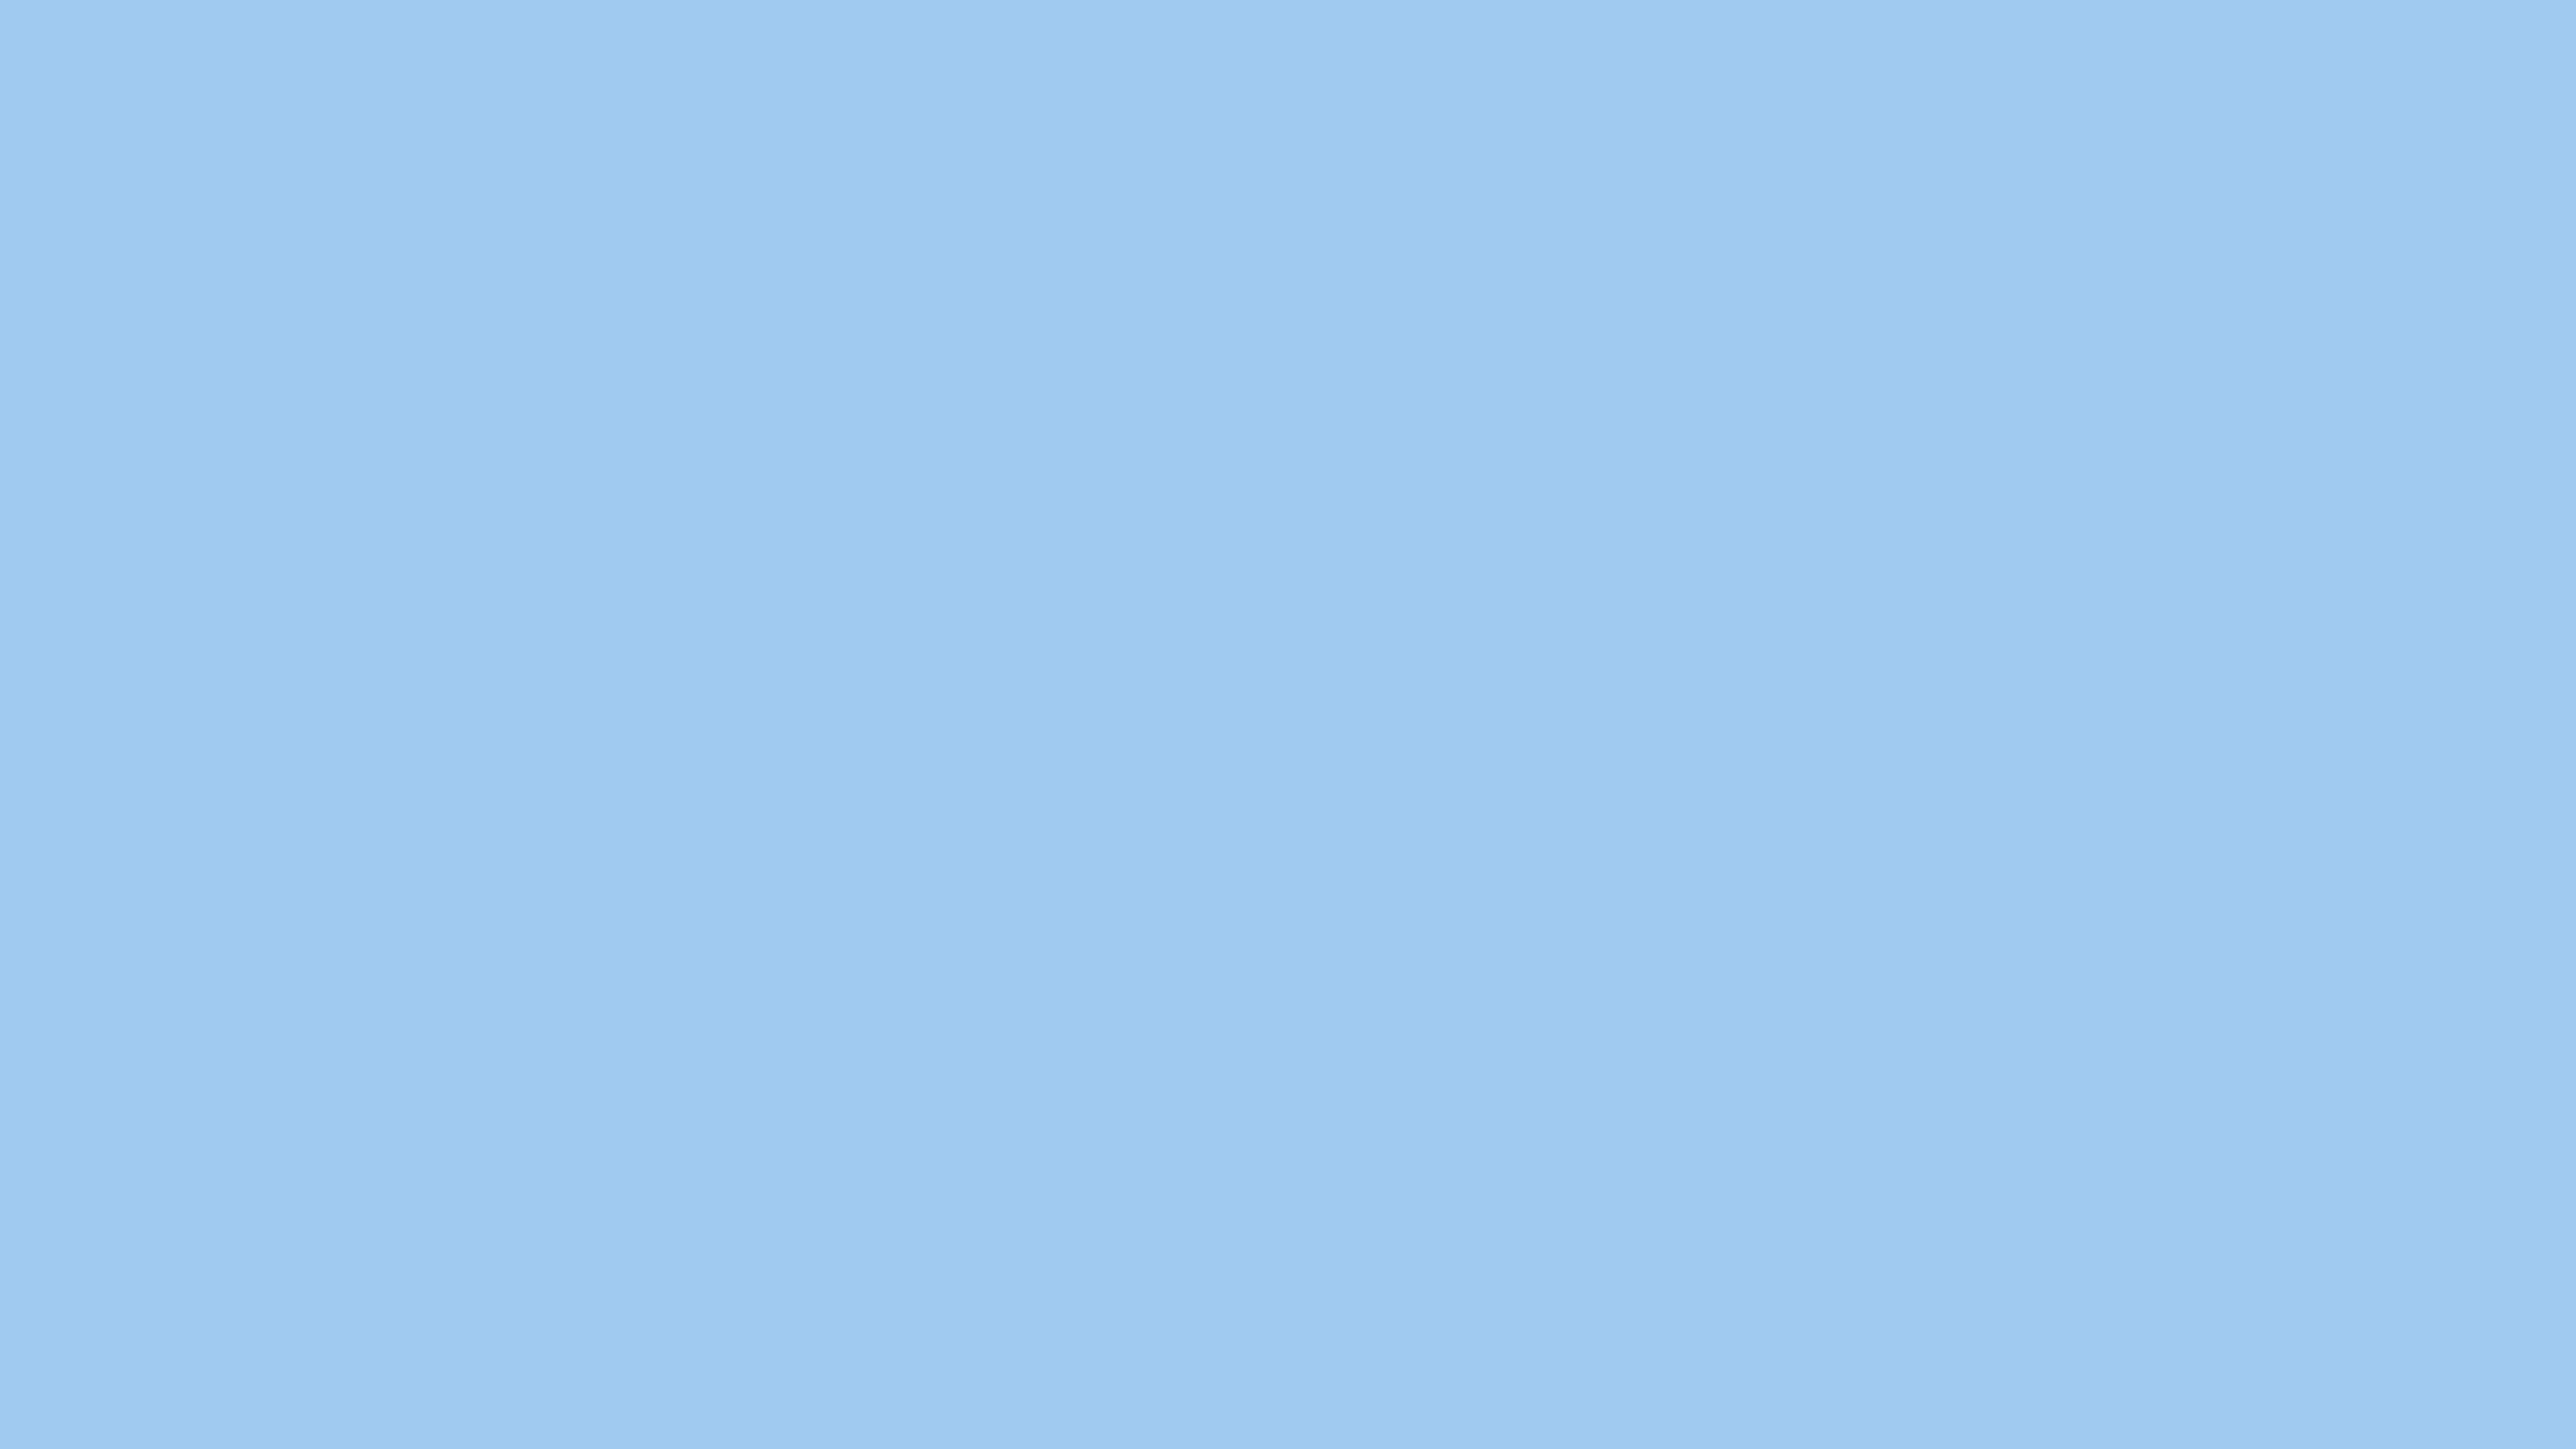 7680x4320 Baby Blue Eyes Solid Color Background